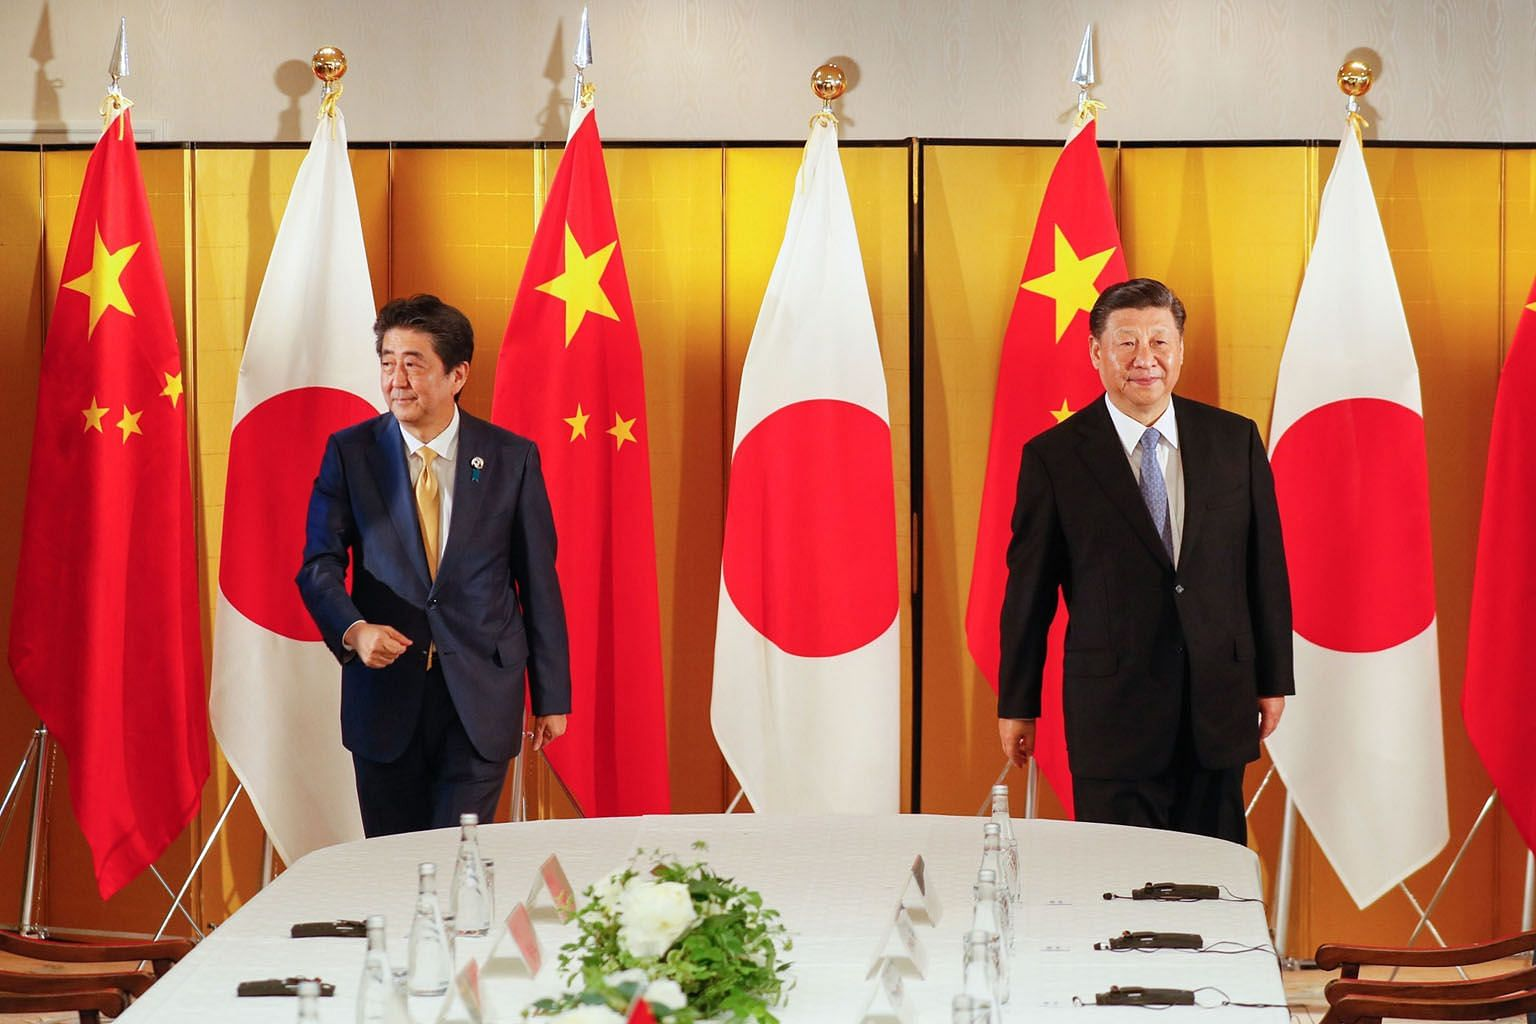 """Japan's then Prime Minister Shinzo Abe (left) and Chinese President Xi Jinping at a bilateral meeting ahead of the Group of 20 summit in Osaka last year. In 2007, Mr Abe, with an eye on China, had proposed an """"Arc of Democracy"""" as a loose alliance of"""